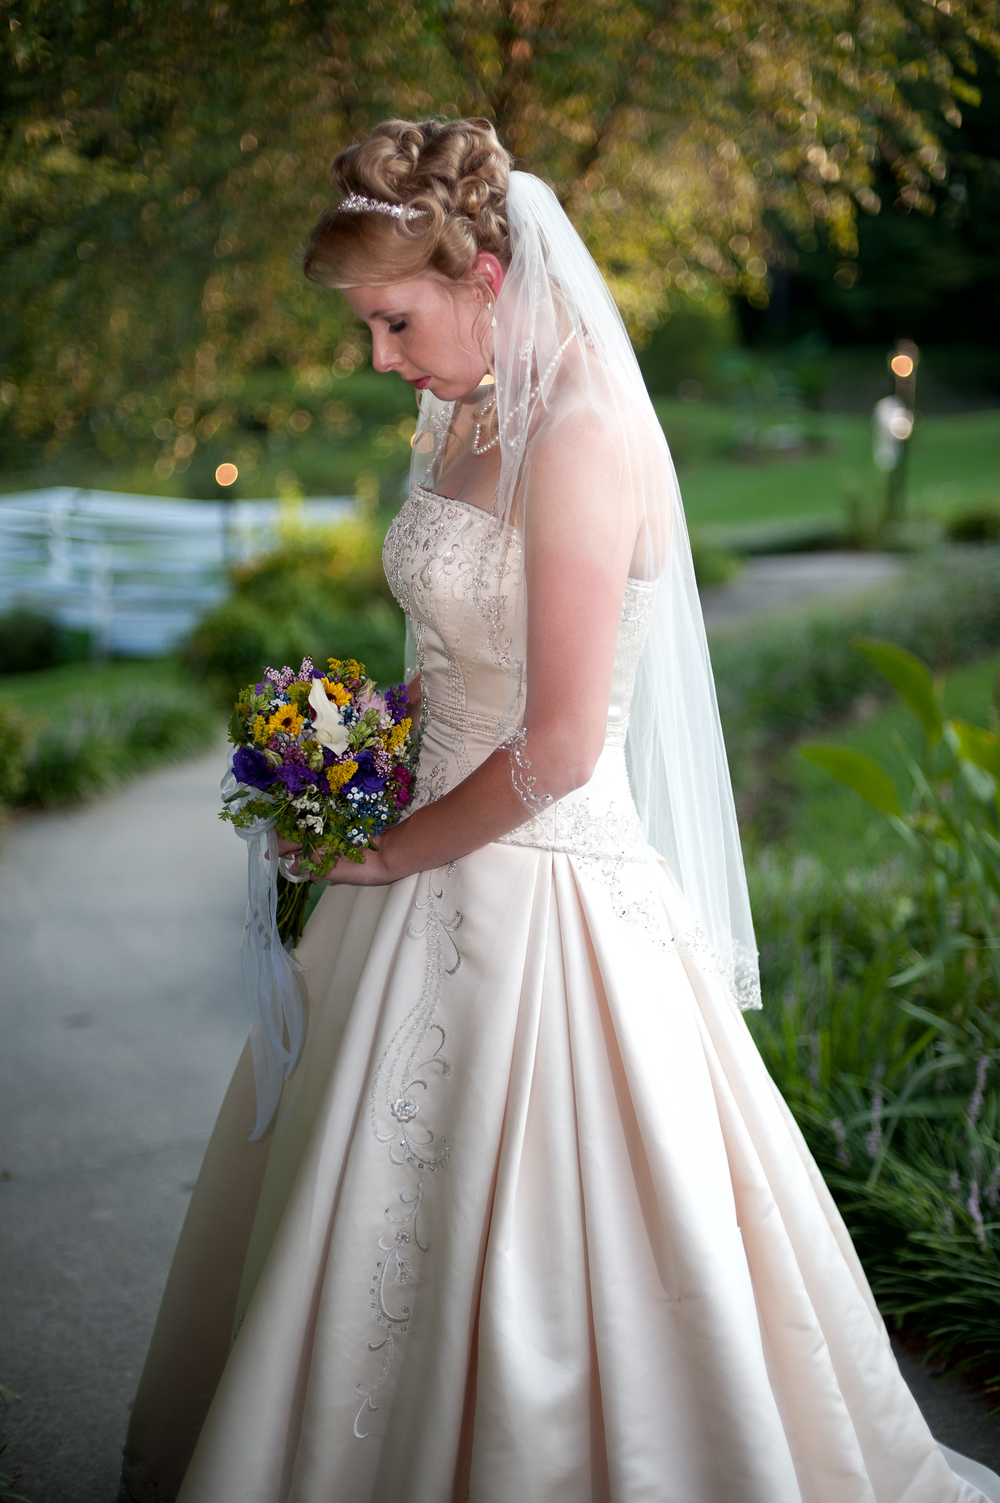 Jewish Bridal in Concord, North Carolina USA.